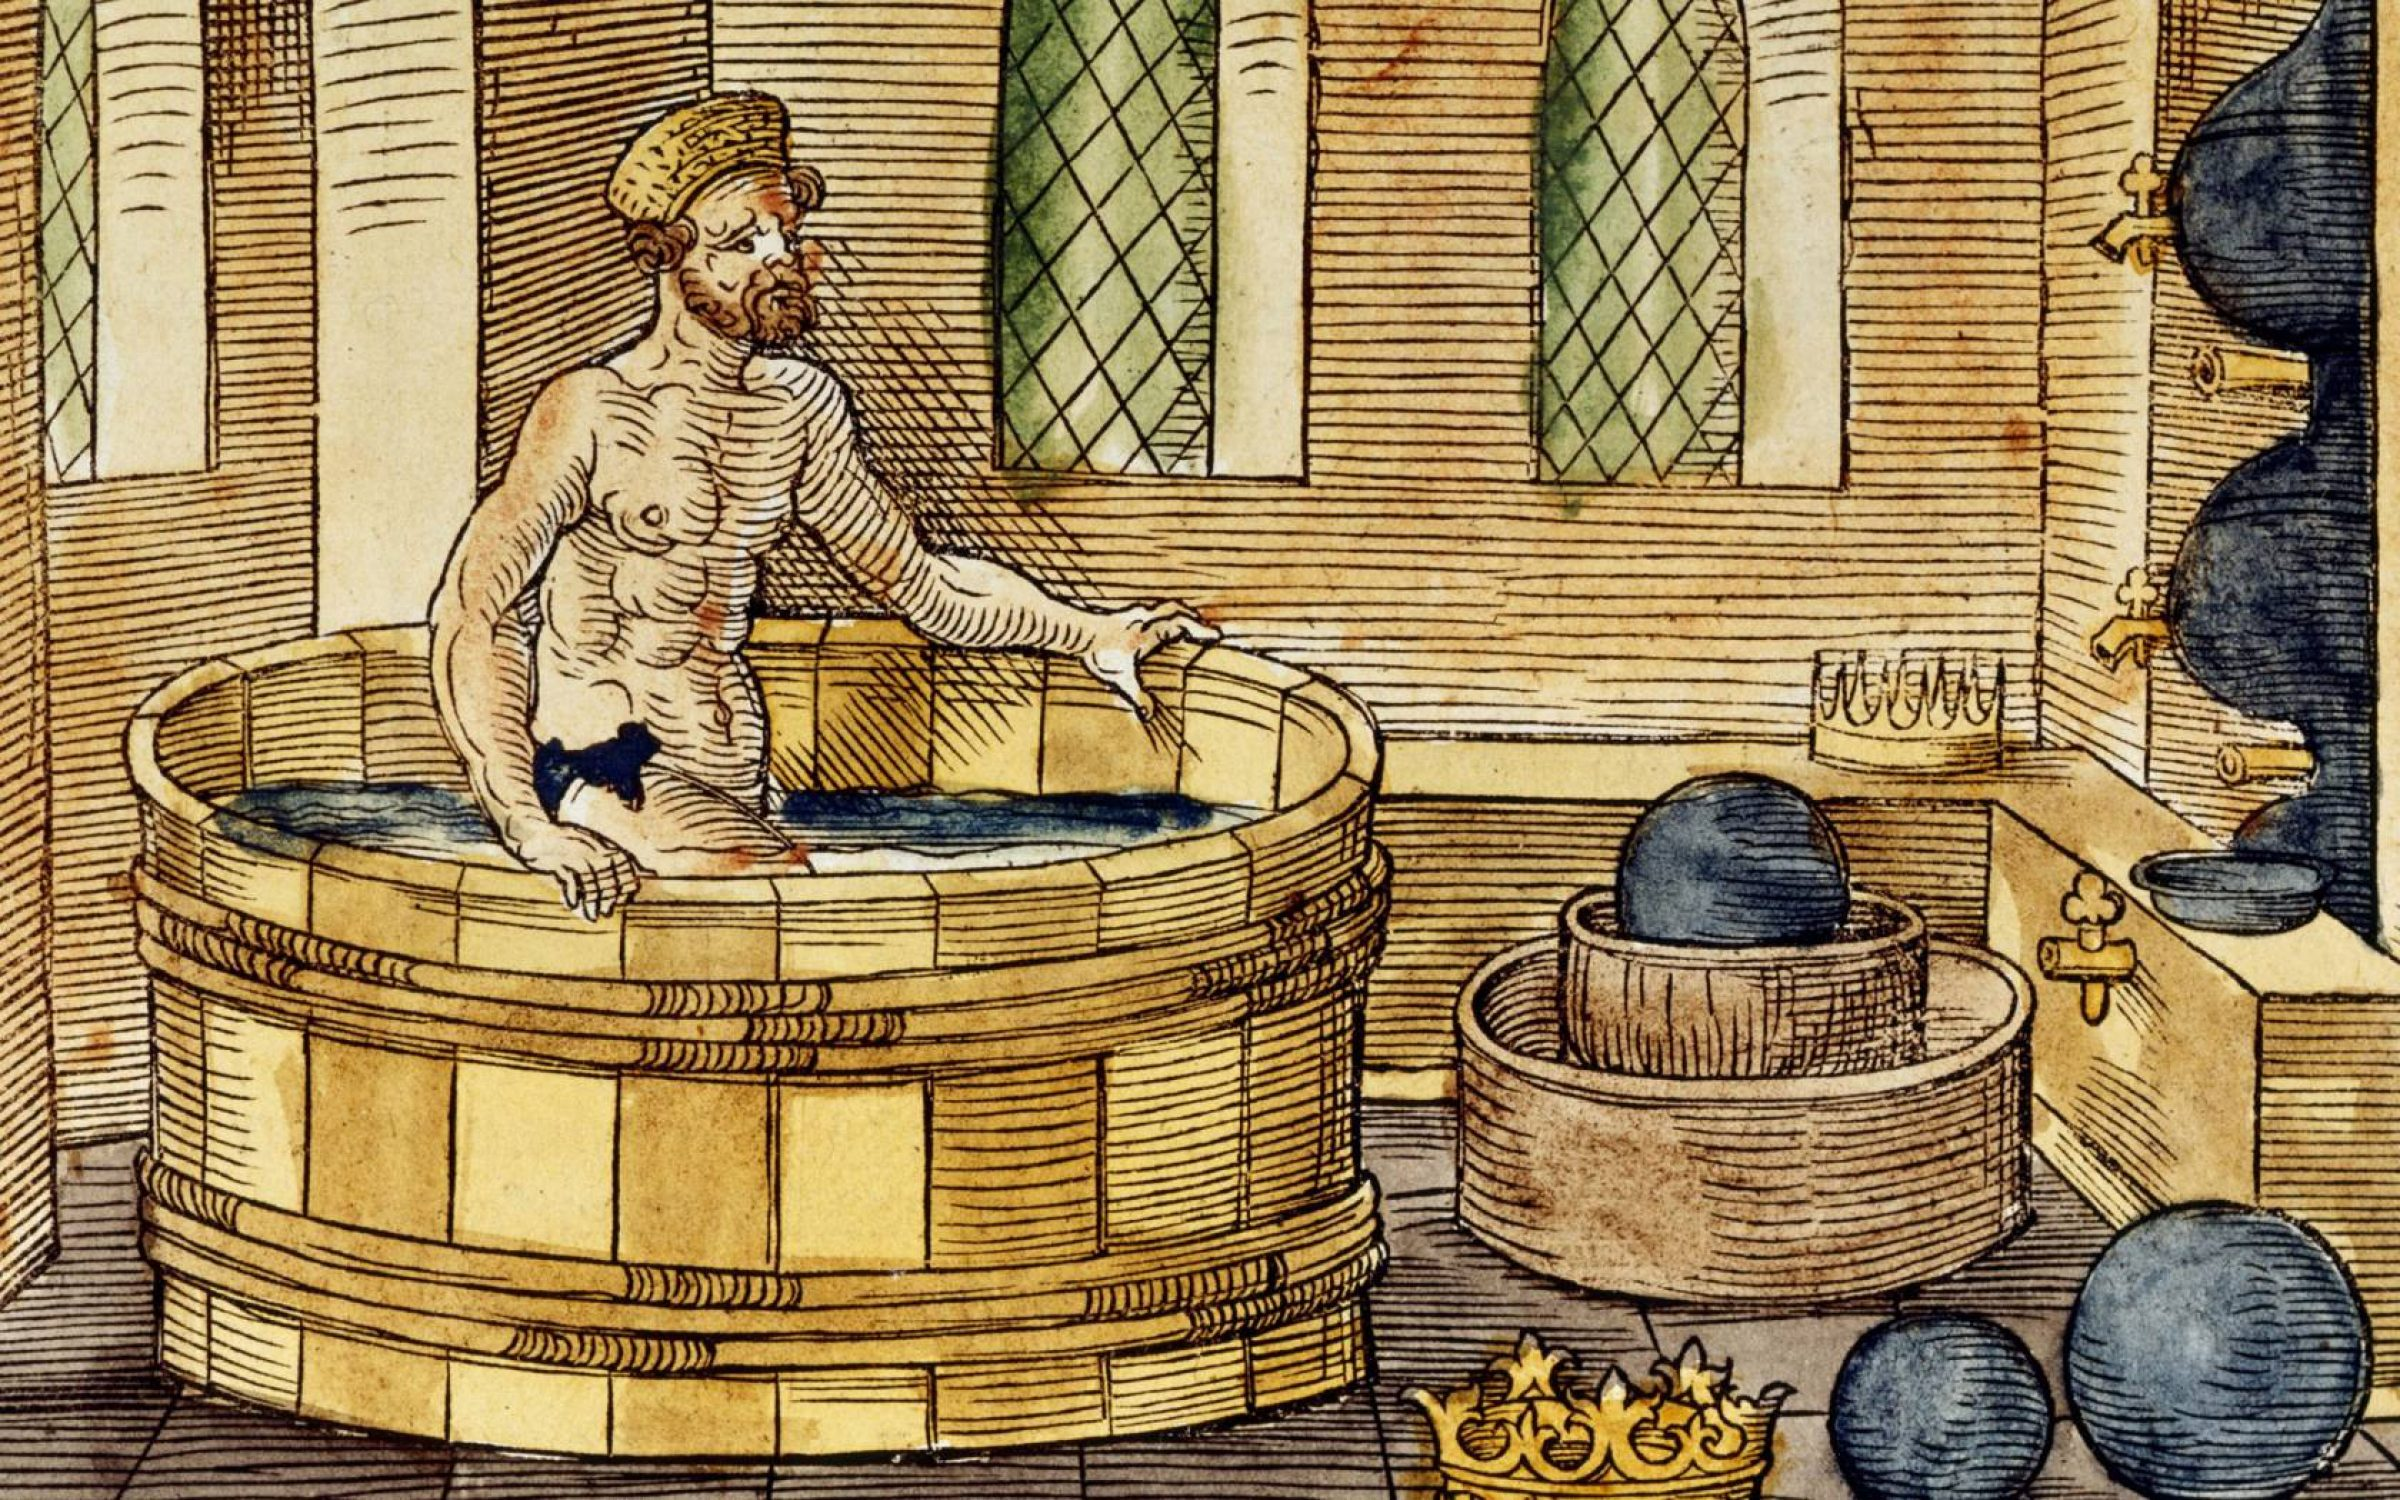 Archimedes in his bath. Hand-coloured woodcut, 1547. Credit: Universal History Archive/Getty Images